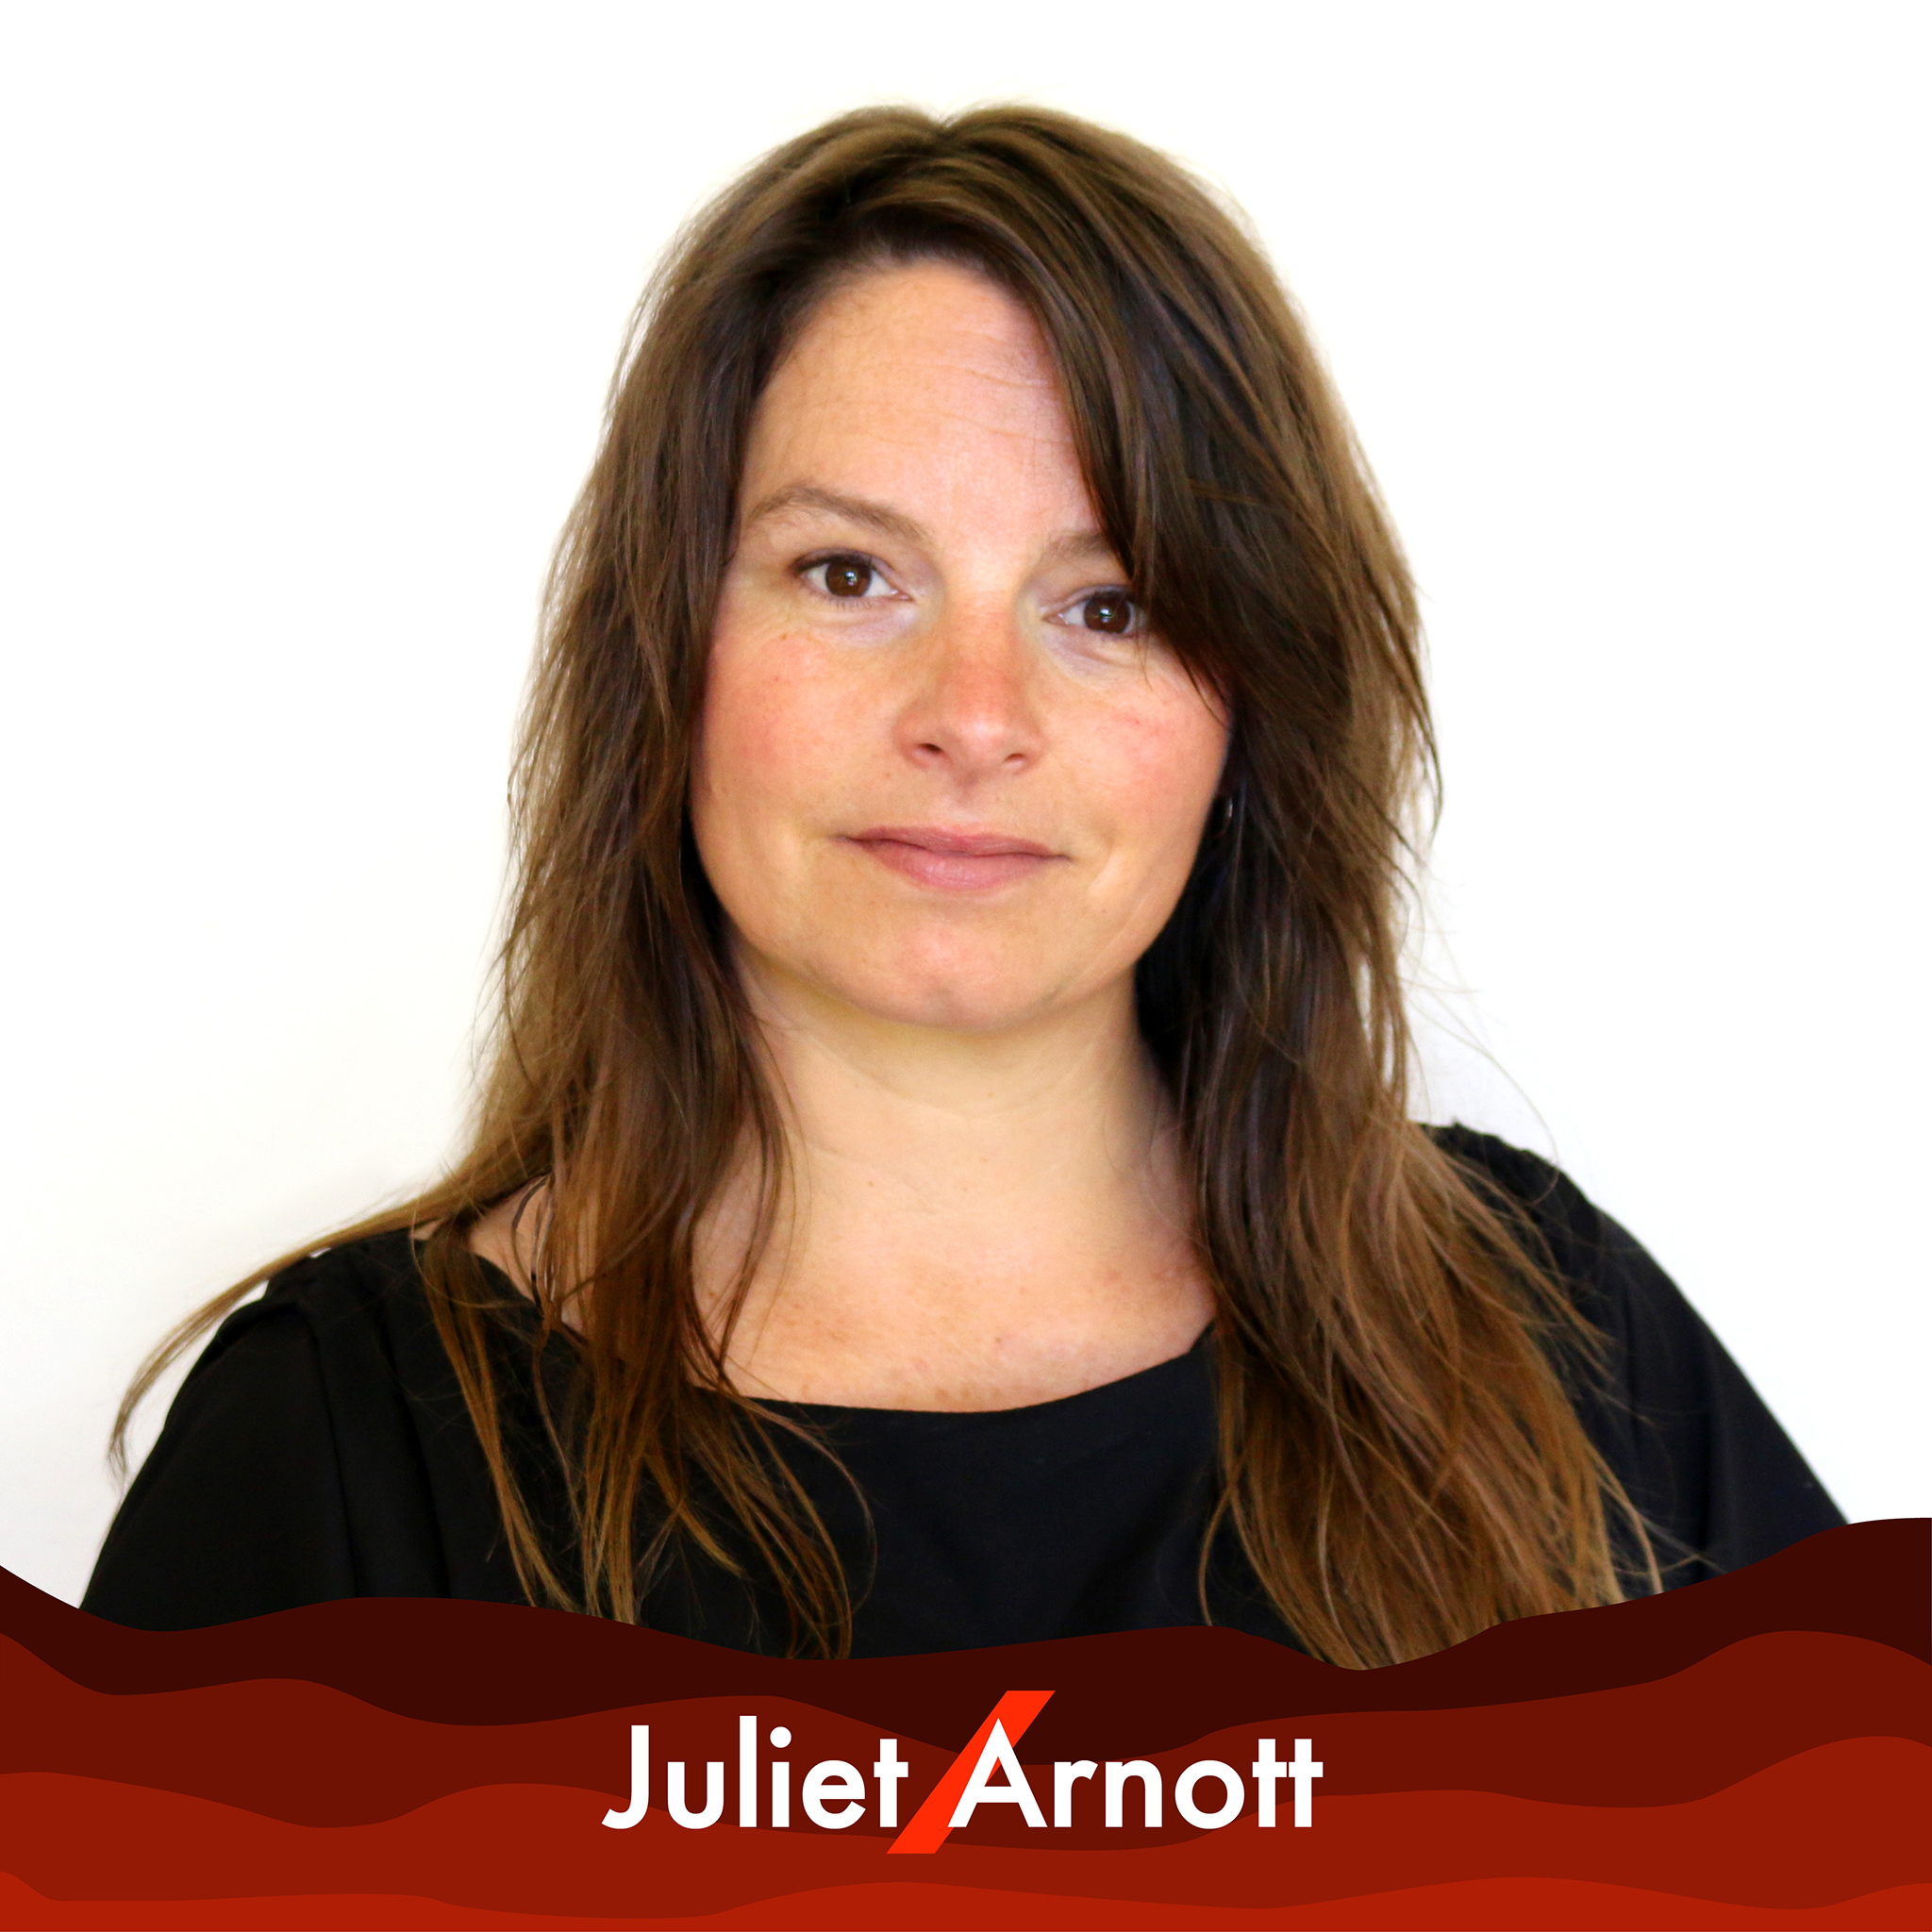 A picture of Juliet Arnott